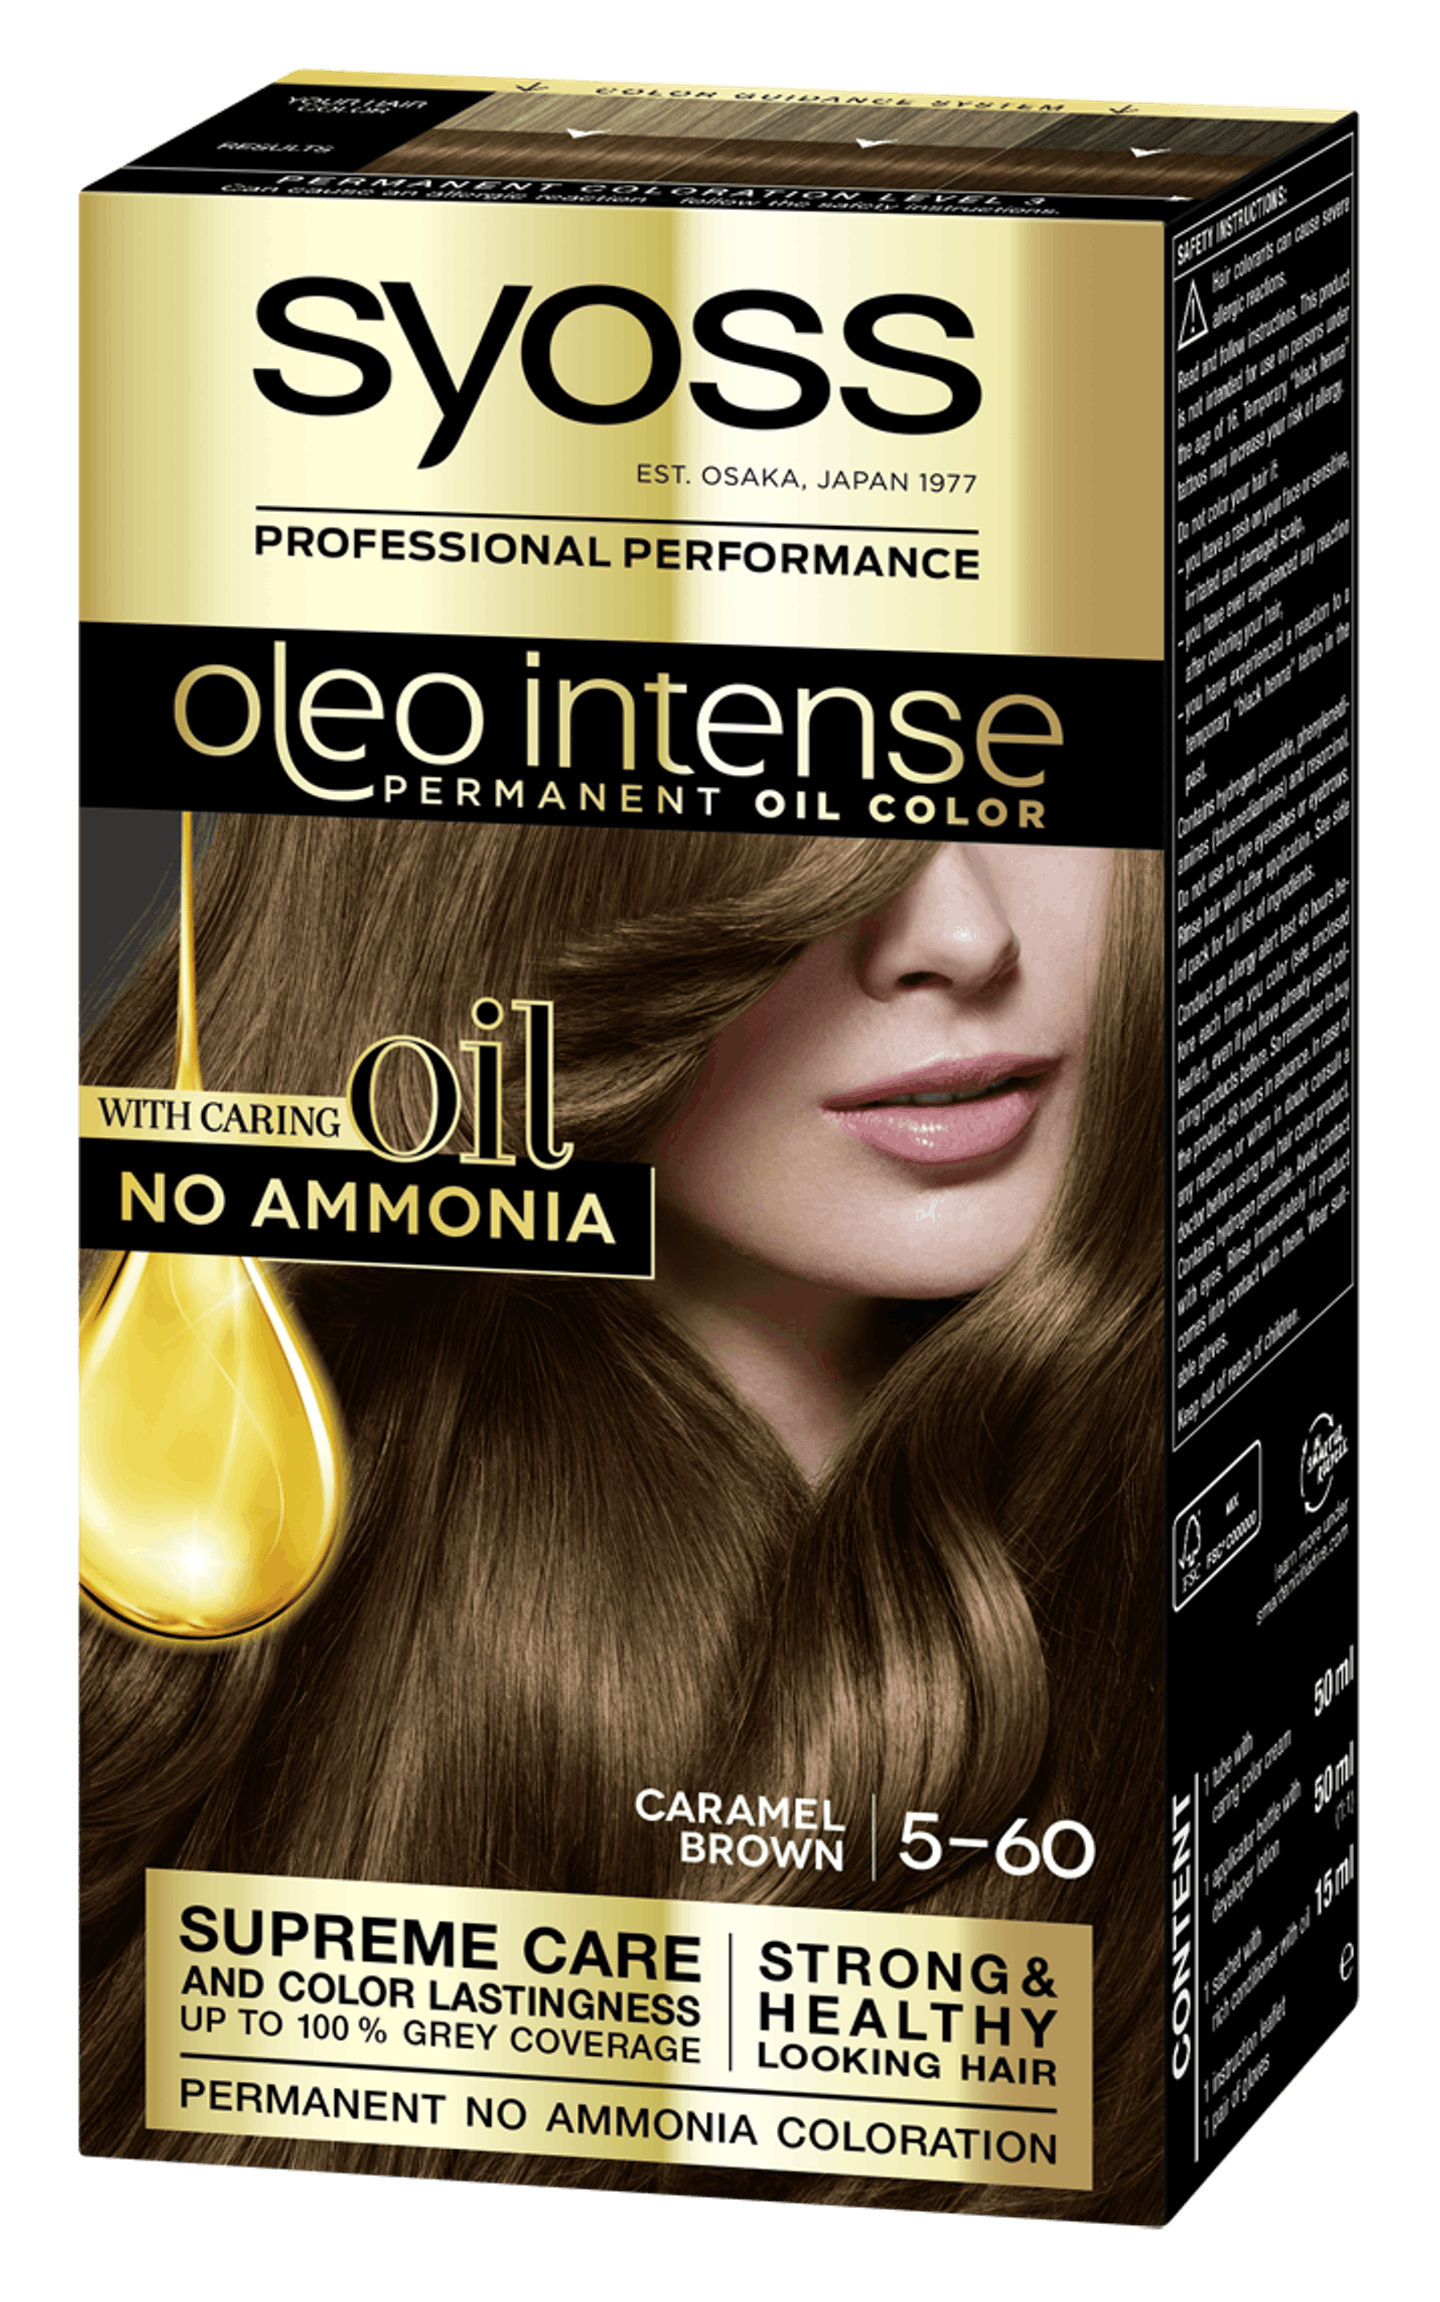 Syoss Oleo Intense Permanent Oil Color 5-60 Caramel Brown